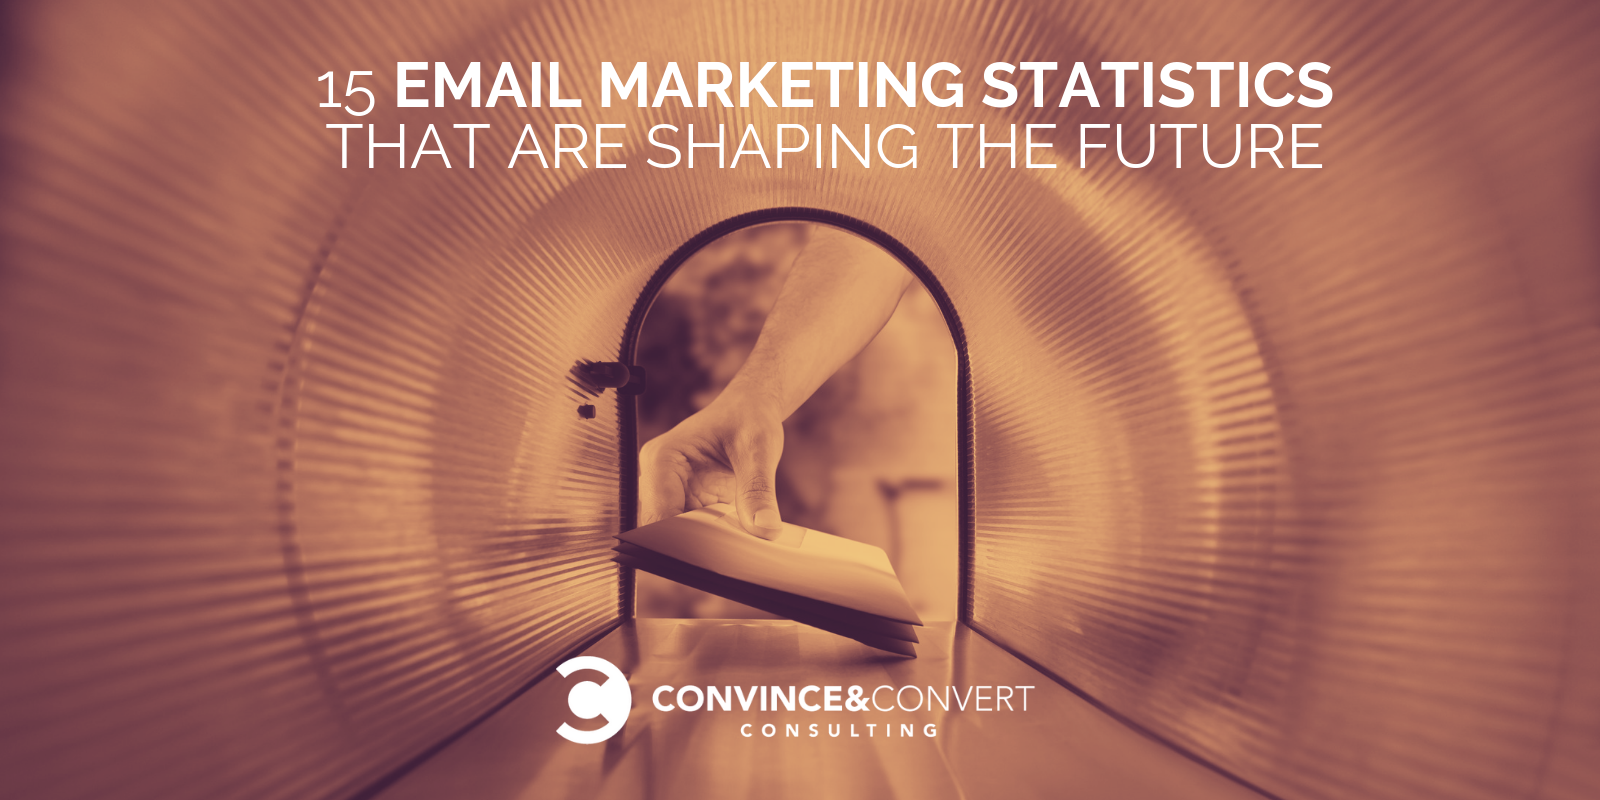 13 Email Marketing Statistics That Are Shaping 2019 and Beyond